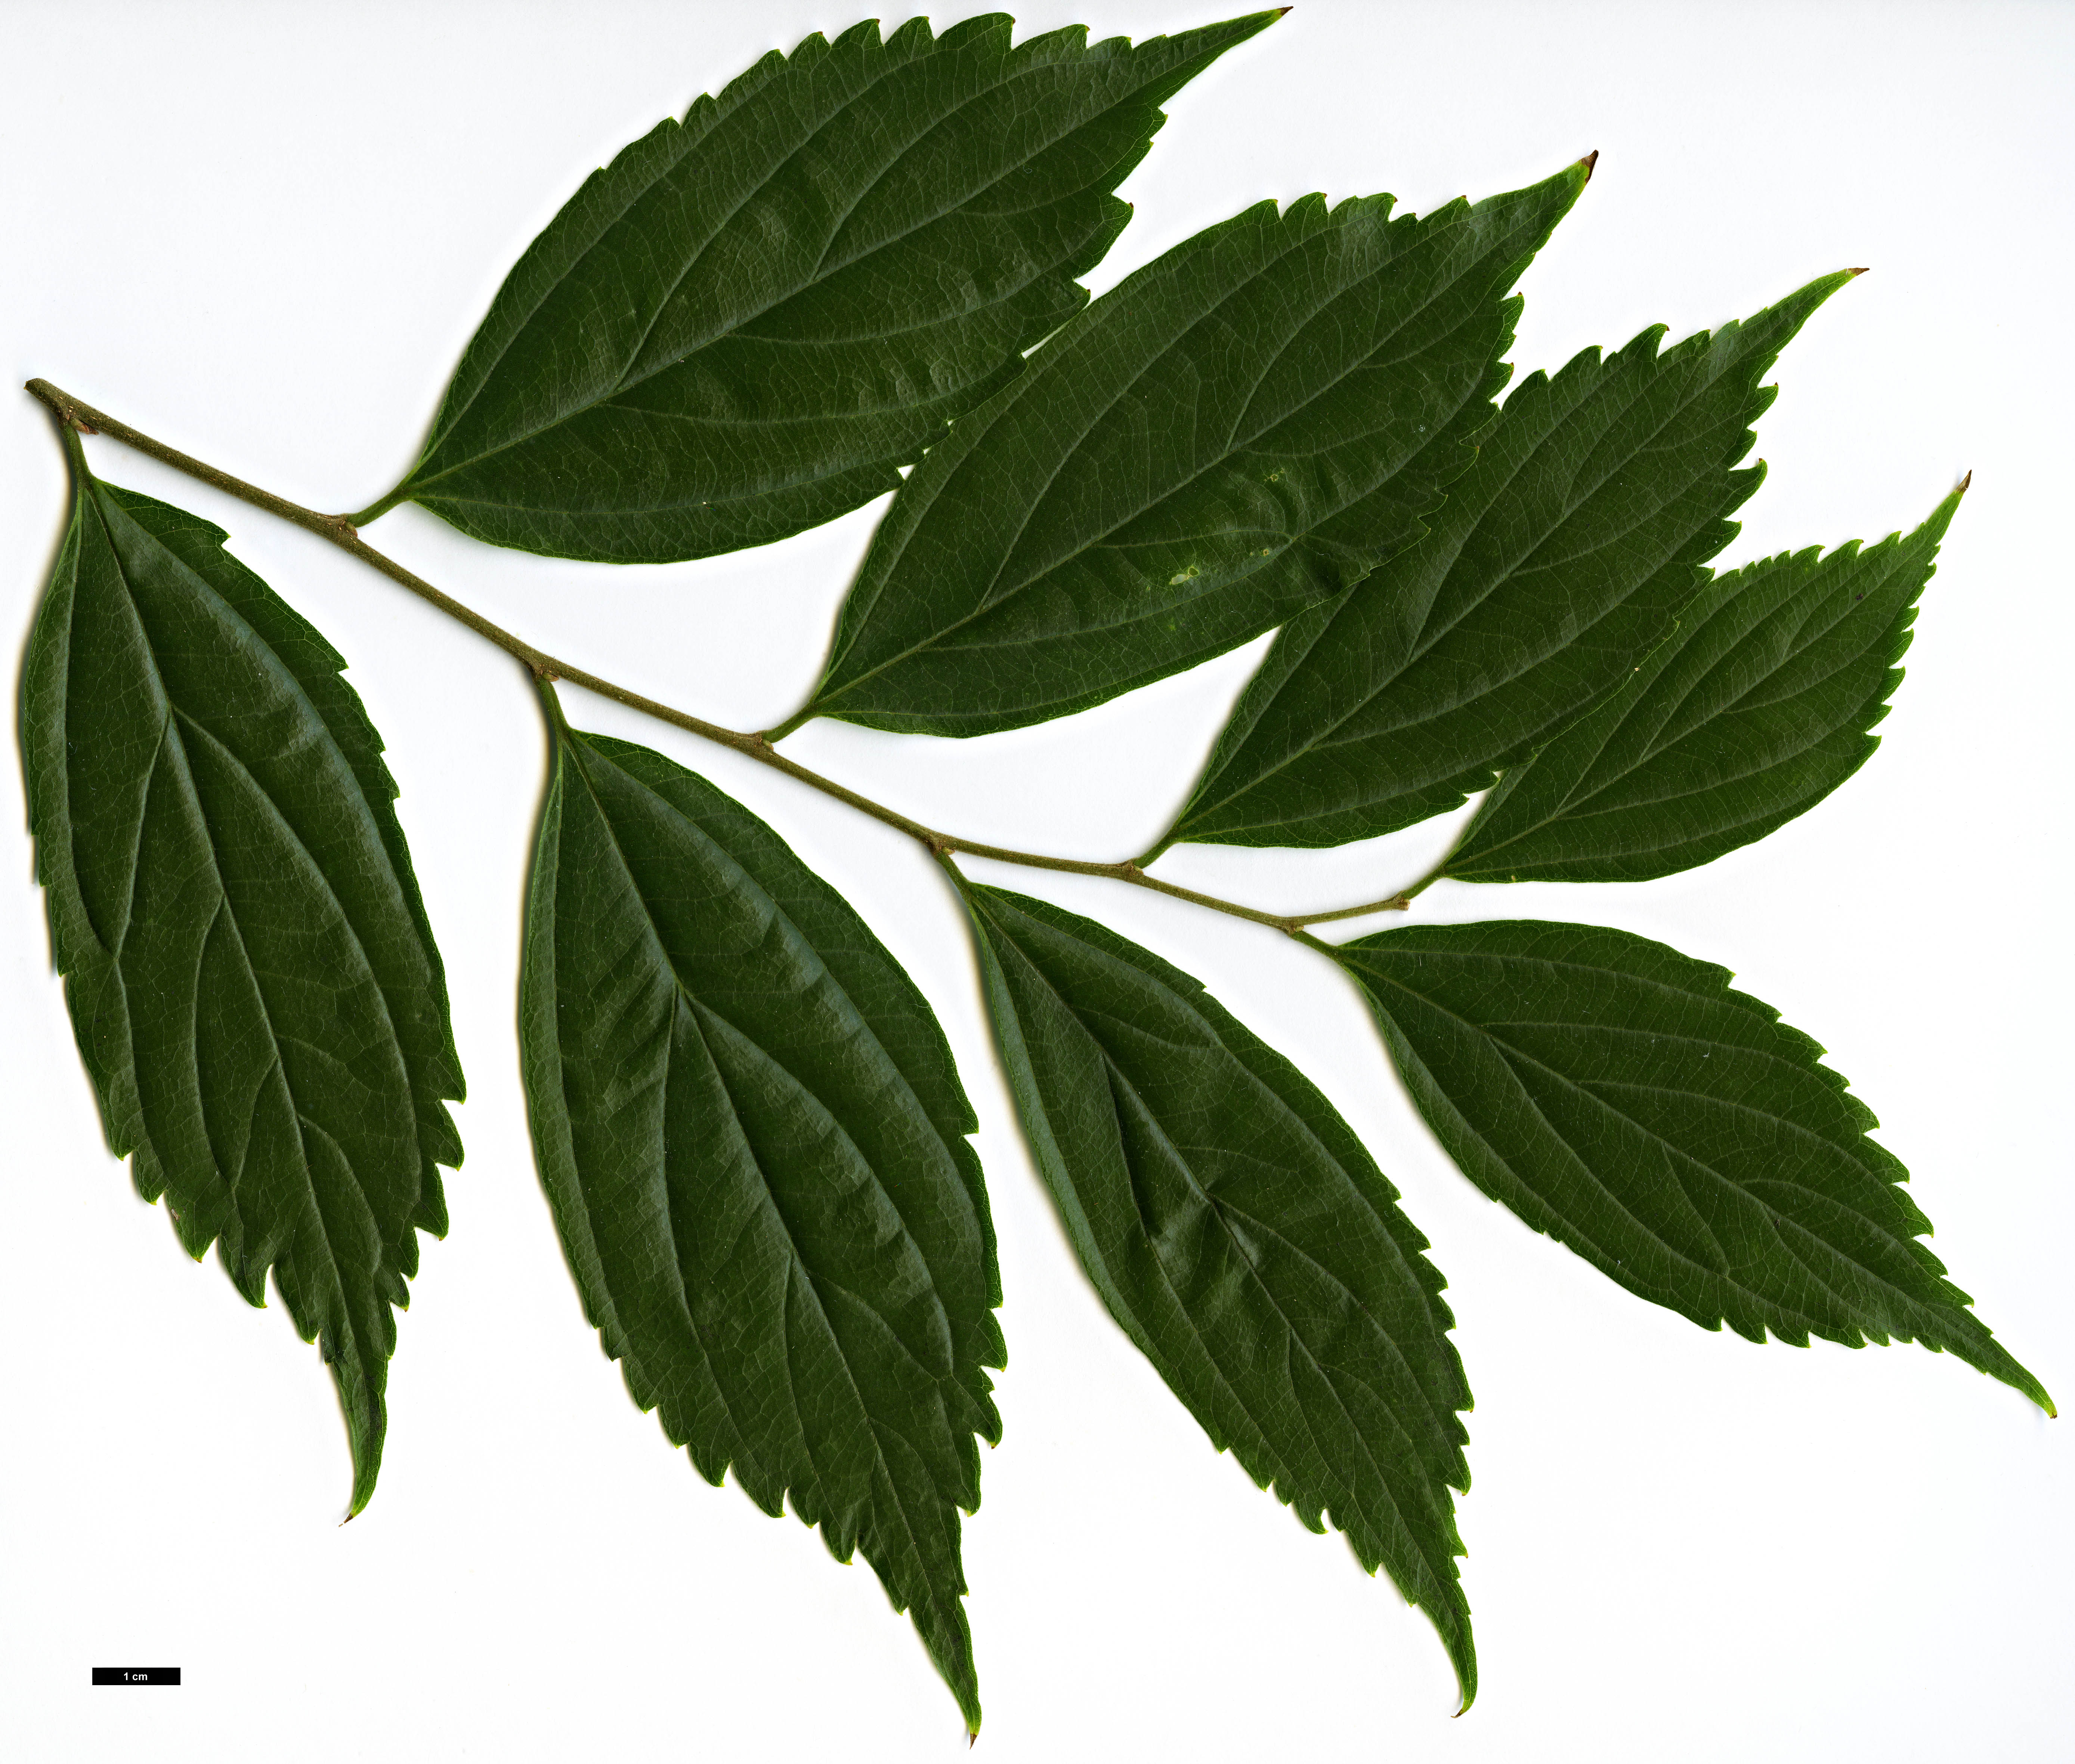 High resolution image: Family: Cannabaceae - Genus: Celtis - Taxon: sinensis